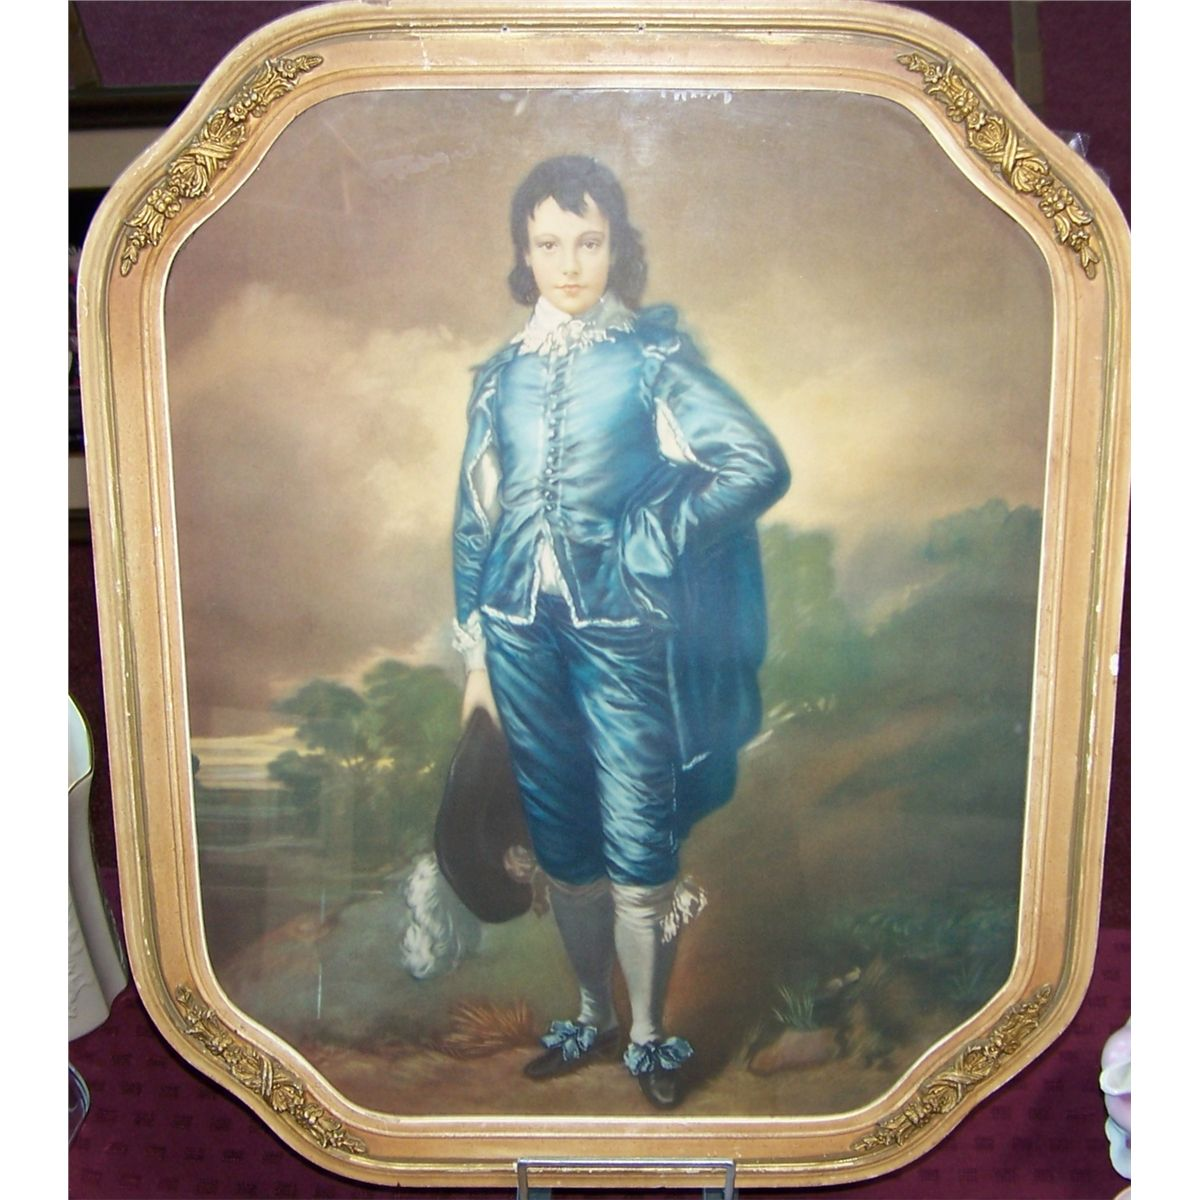 Image 3 Vintage Antique Nicely Framed Blue Boy Pink